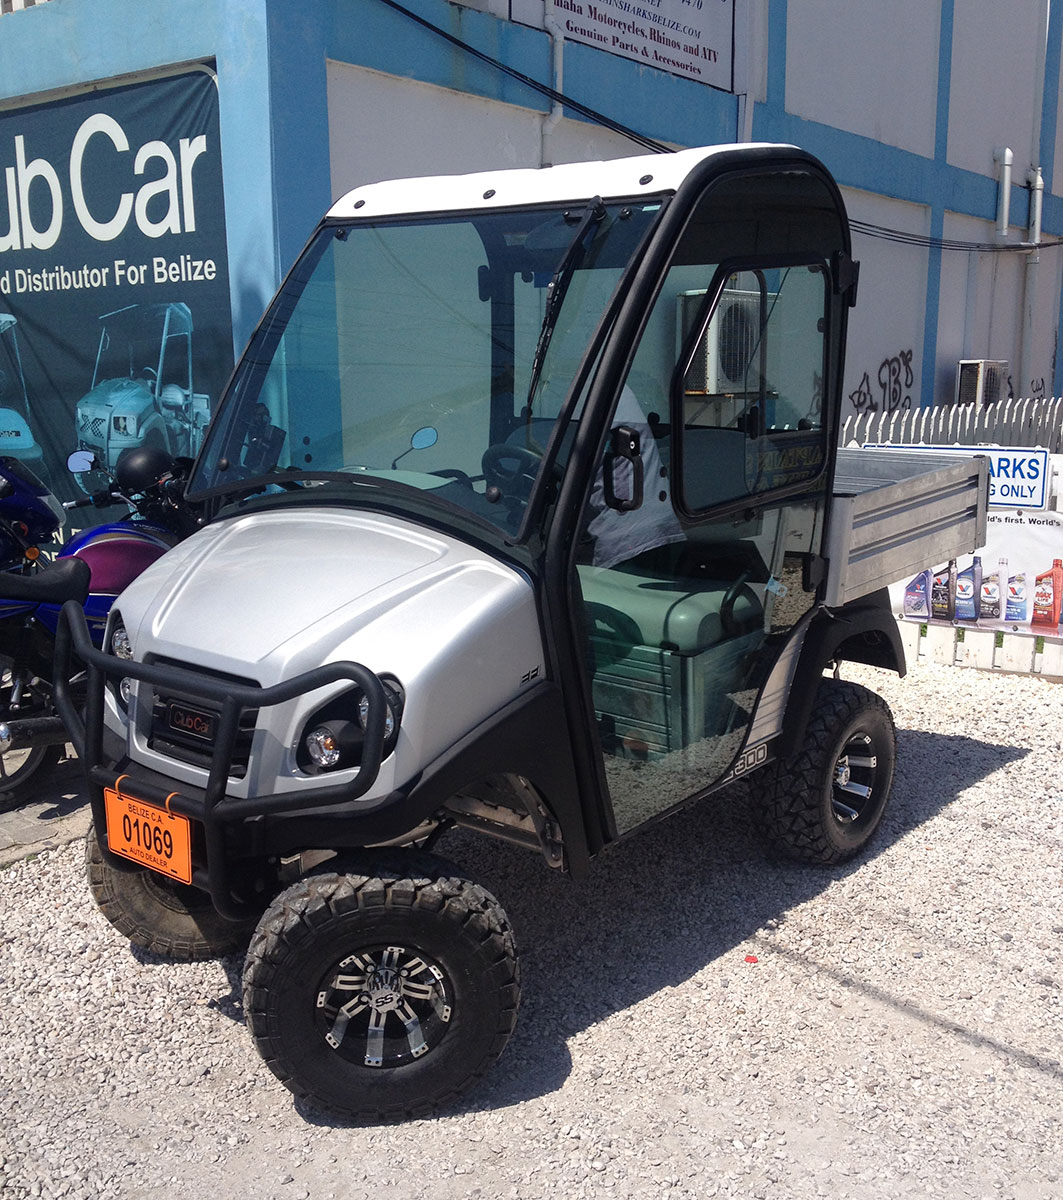 New Carryall 300 with an Electronic Fuel Injection Motor!